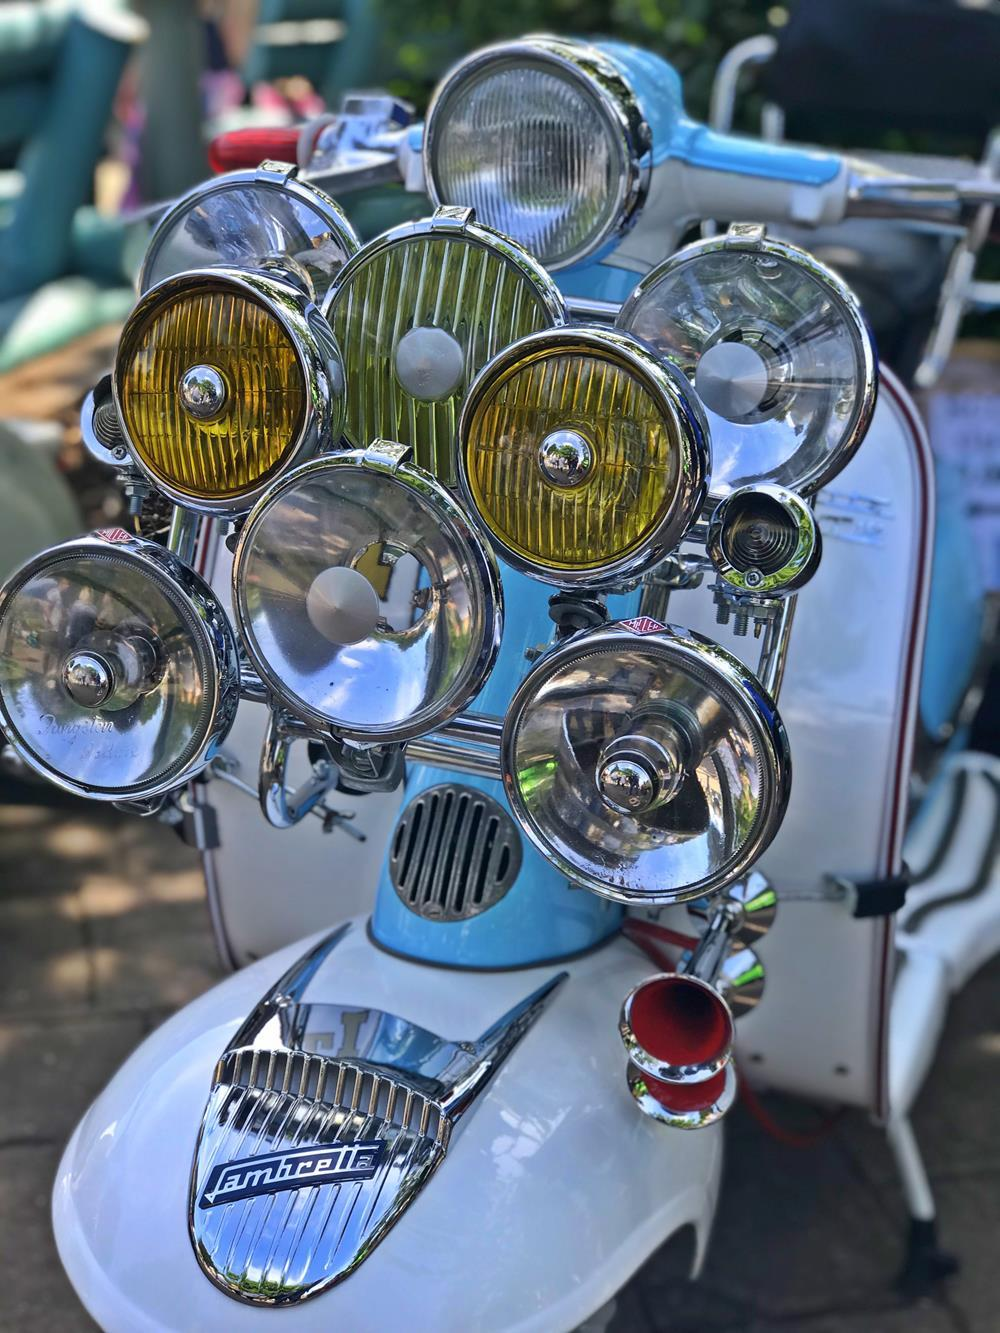 Mod style Lambretta with lights on the front rack